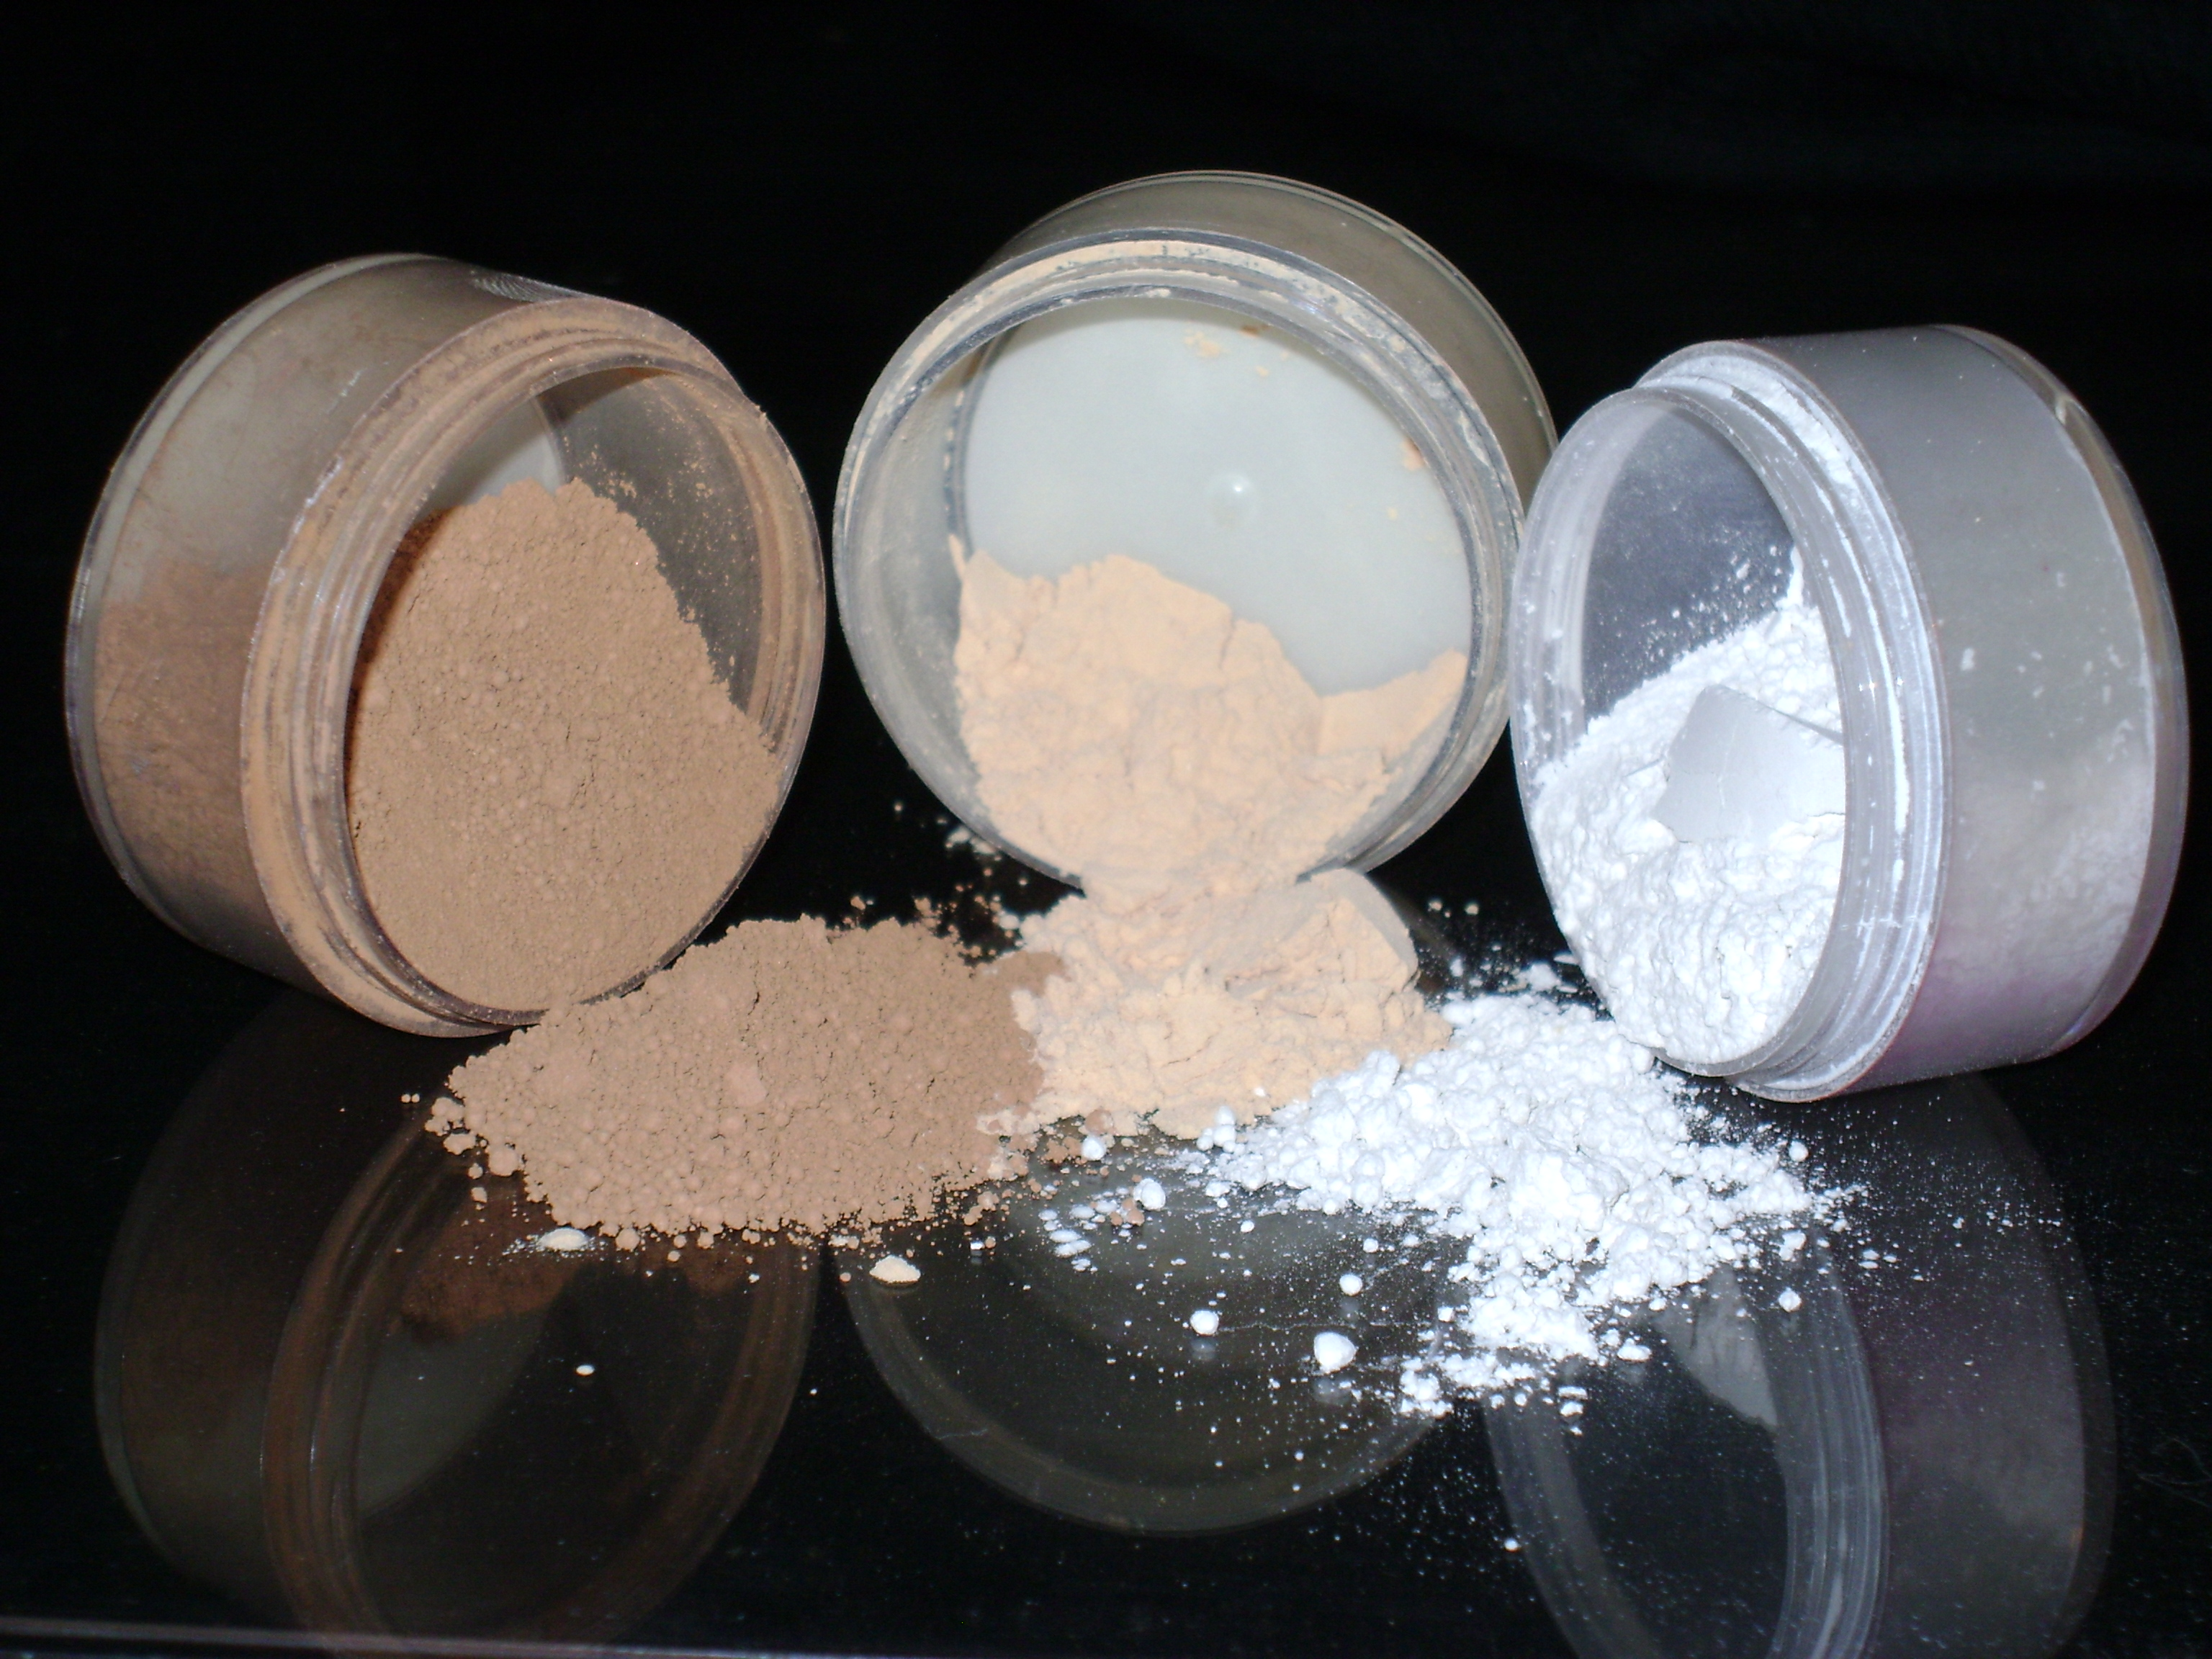 Three containers of powdery makeup CC via Wikimedia Commons